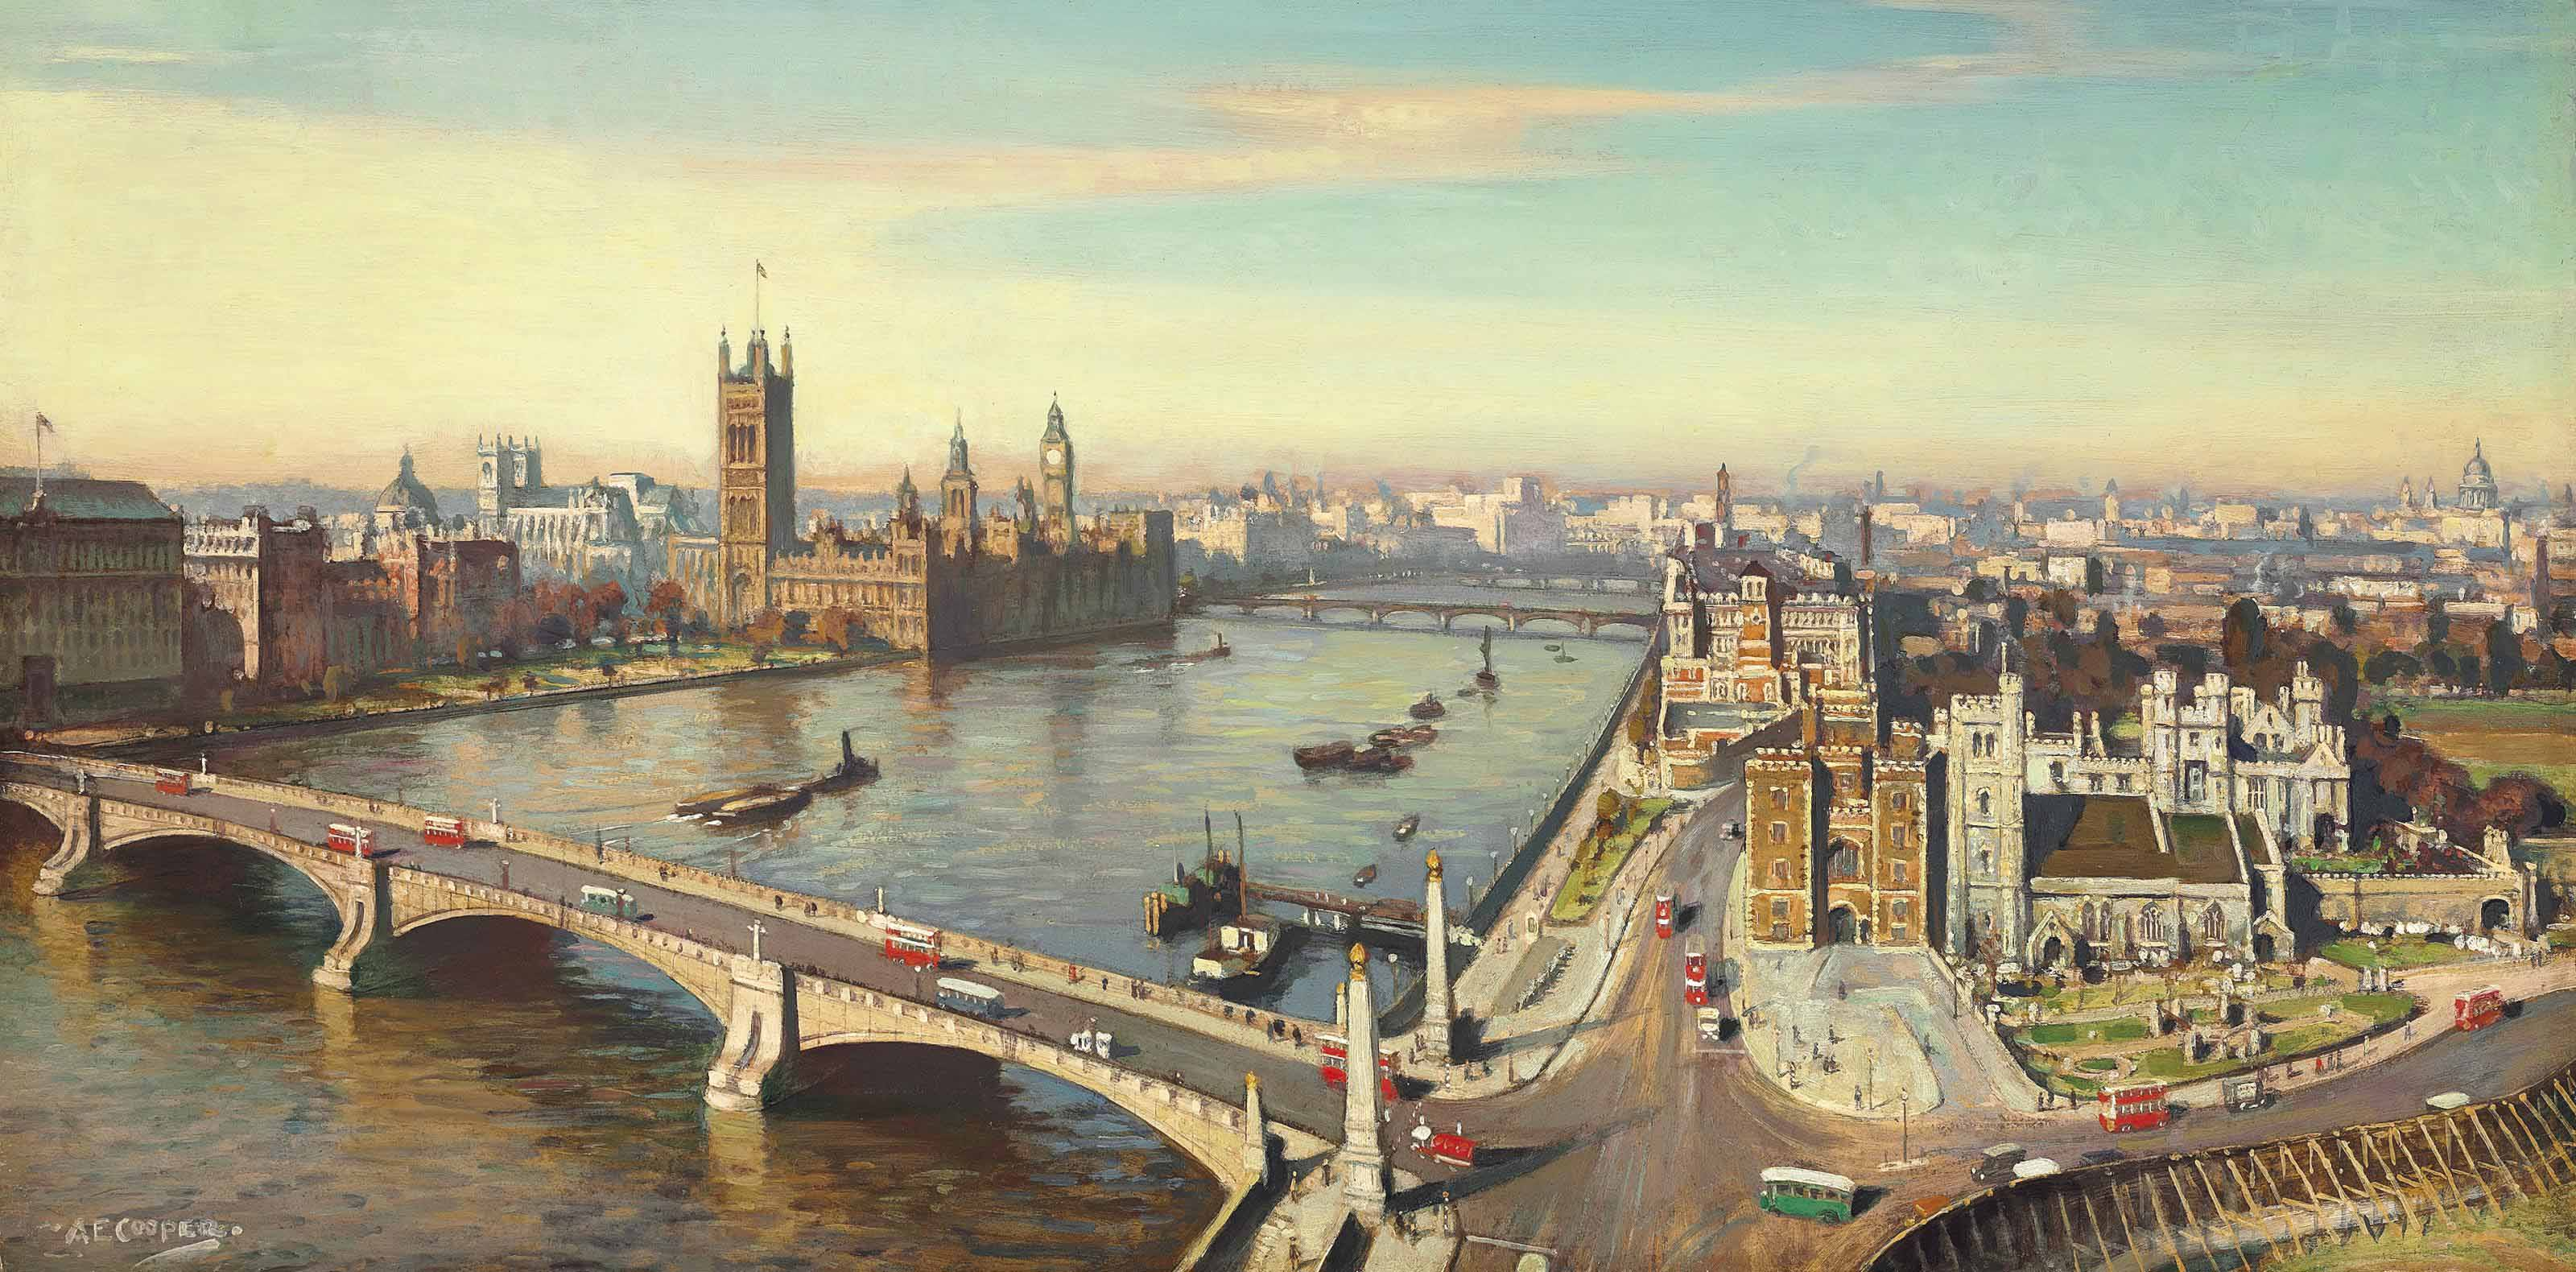 The King's Capital: From Westminster to St Paul's Cathedral, London